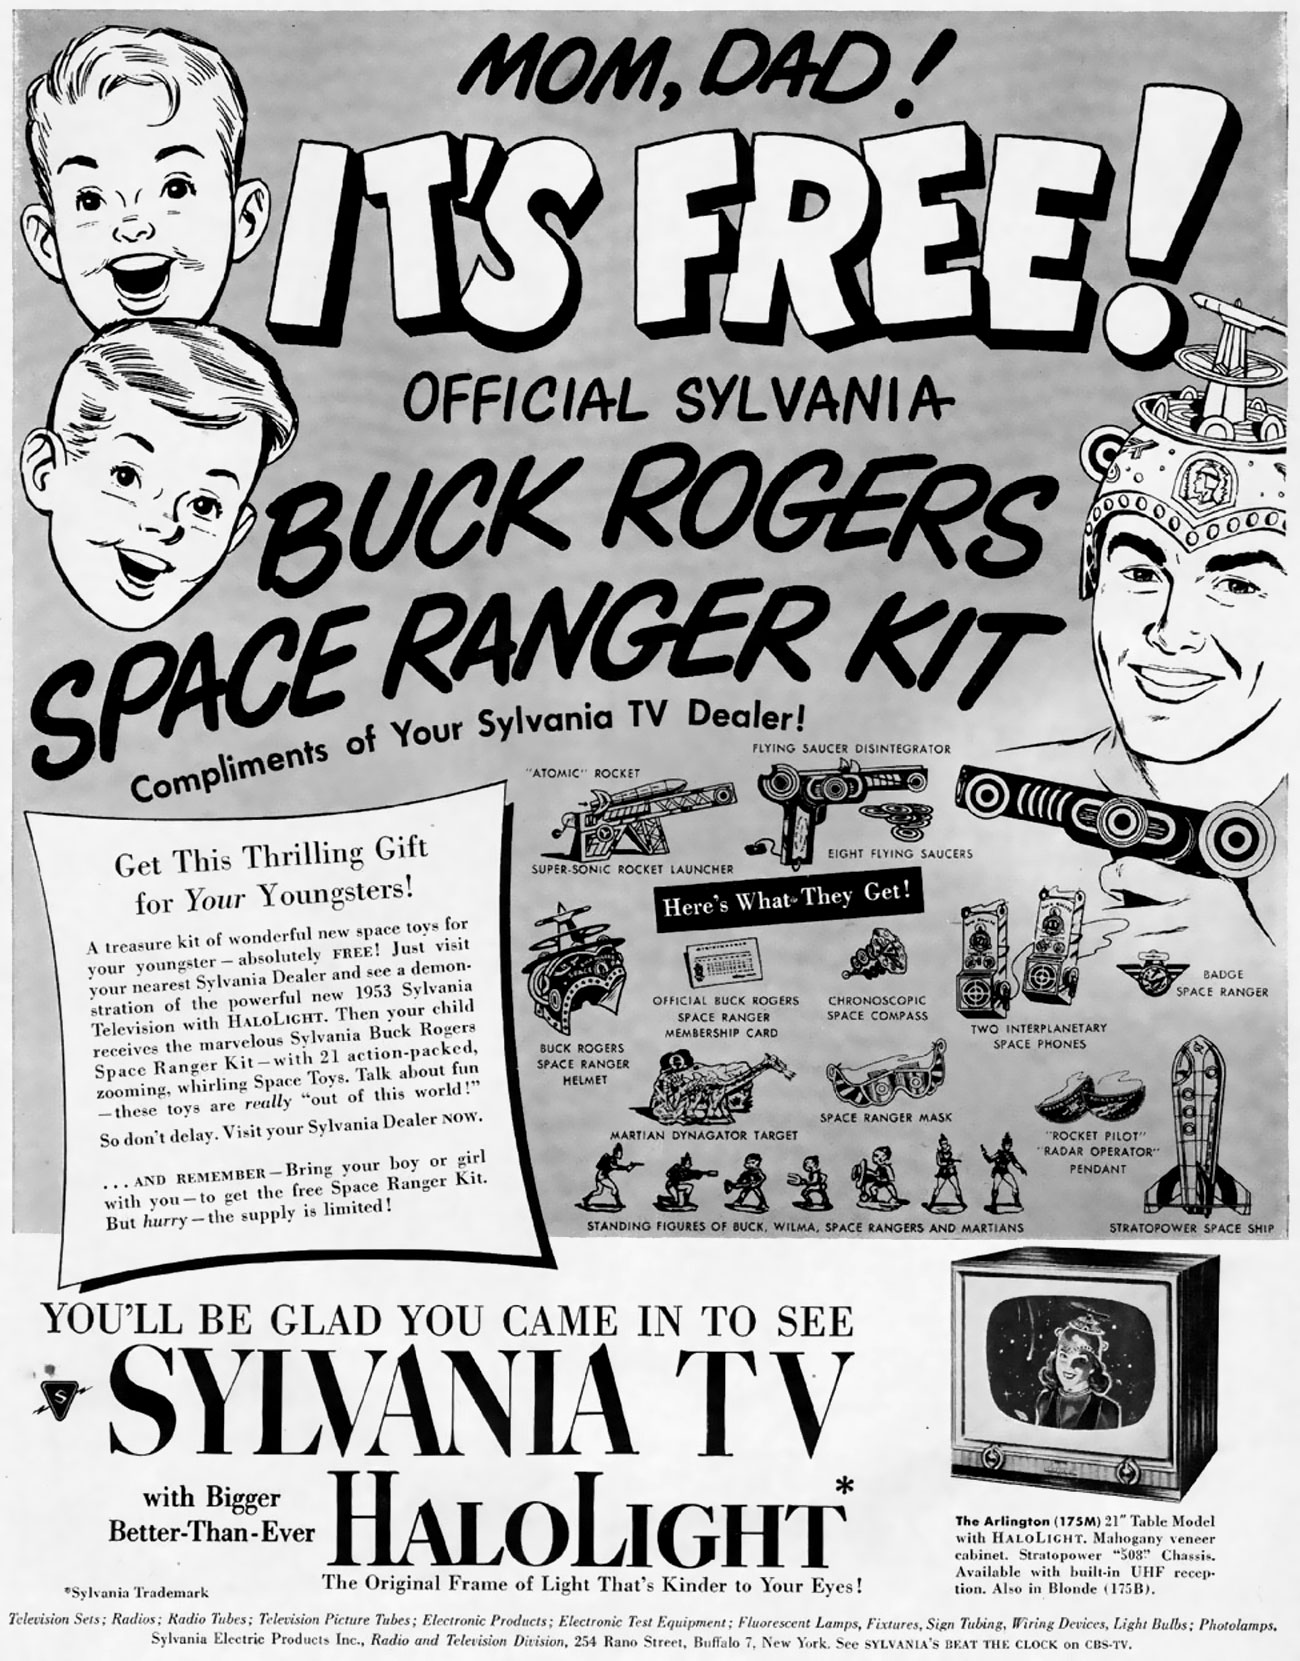 Sylvania featuring Buck Rogers Space Ranger Kit - 1952